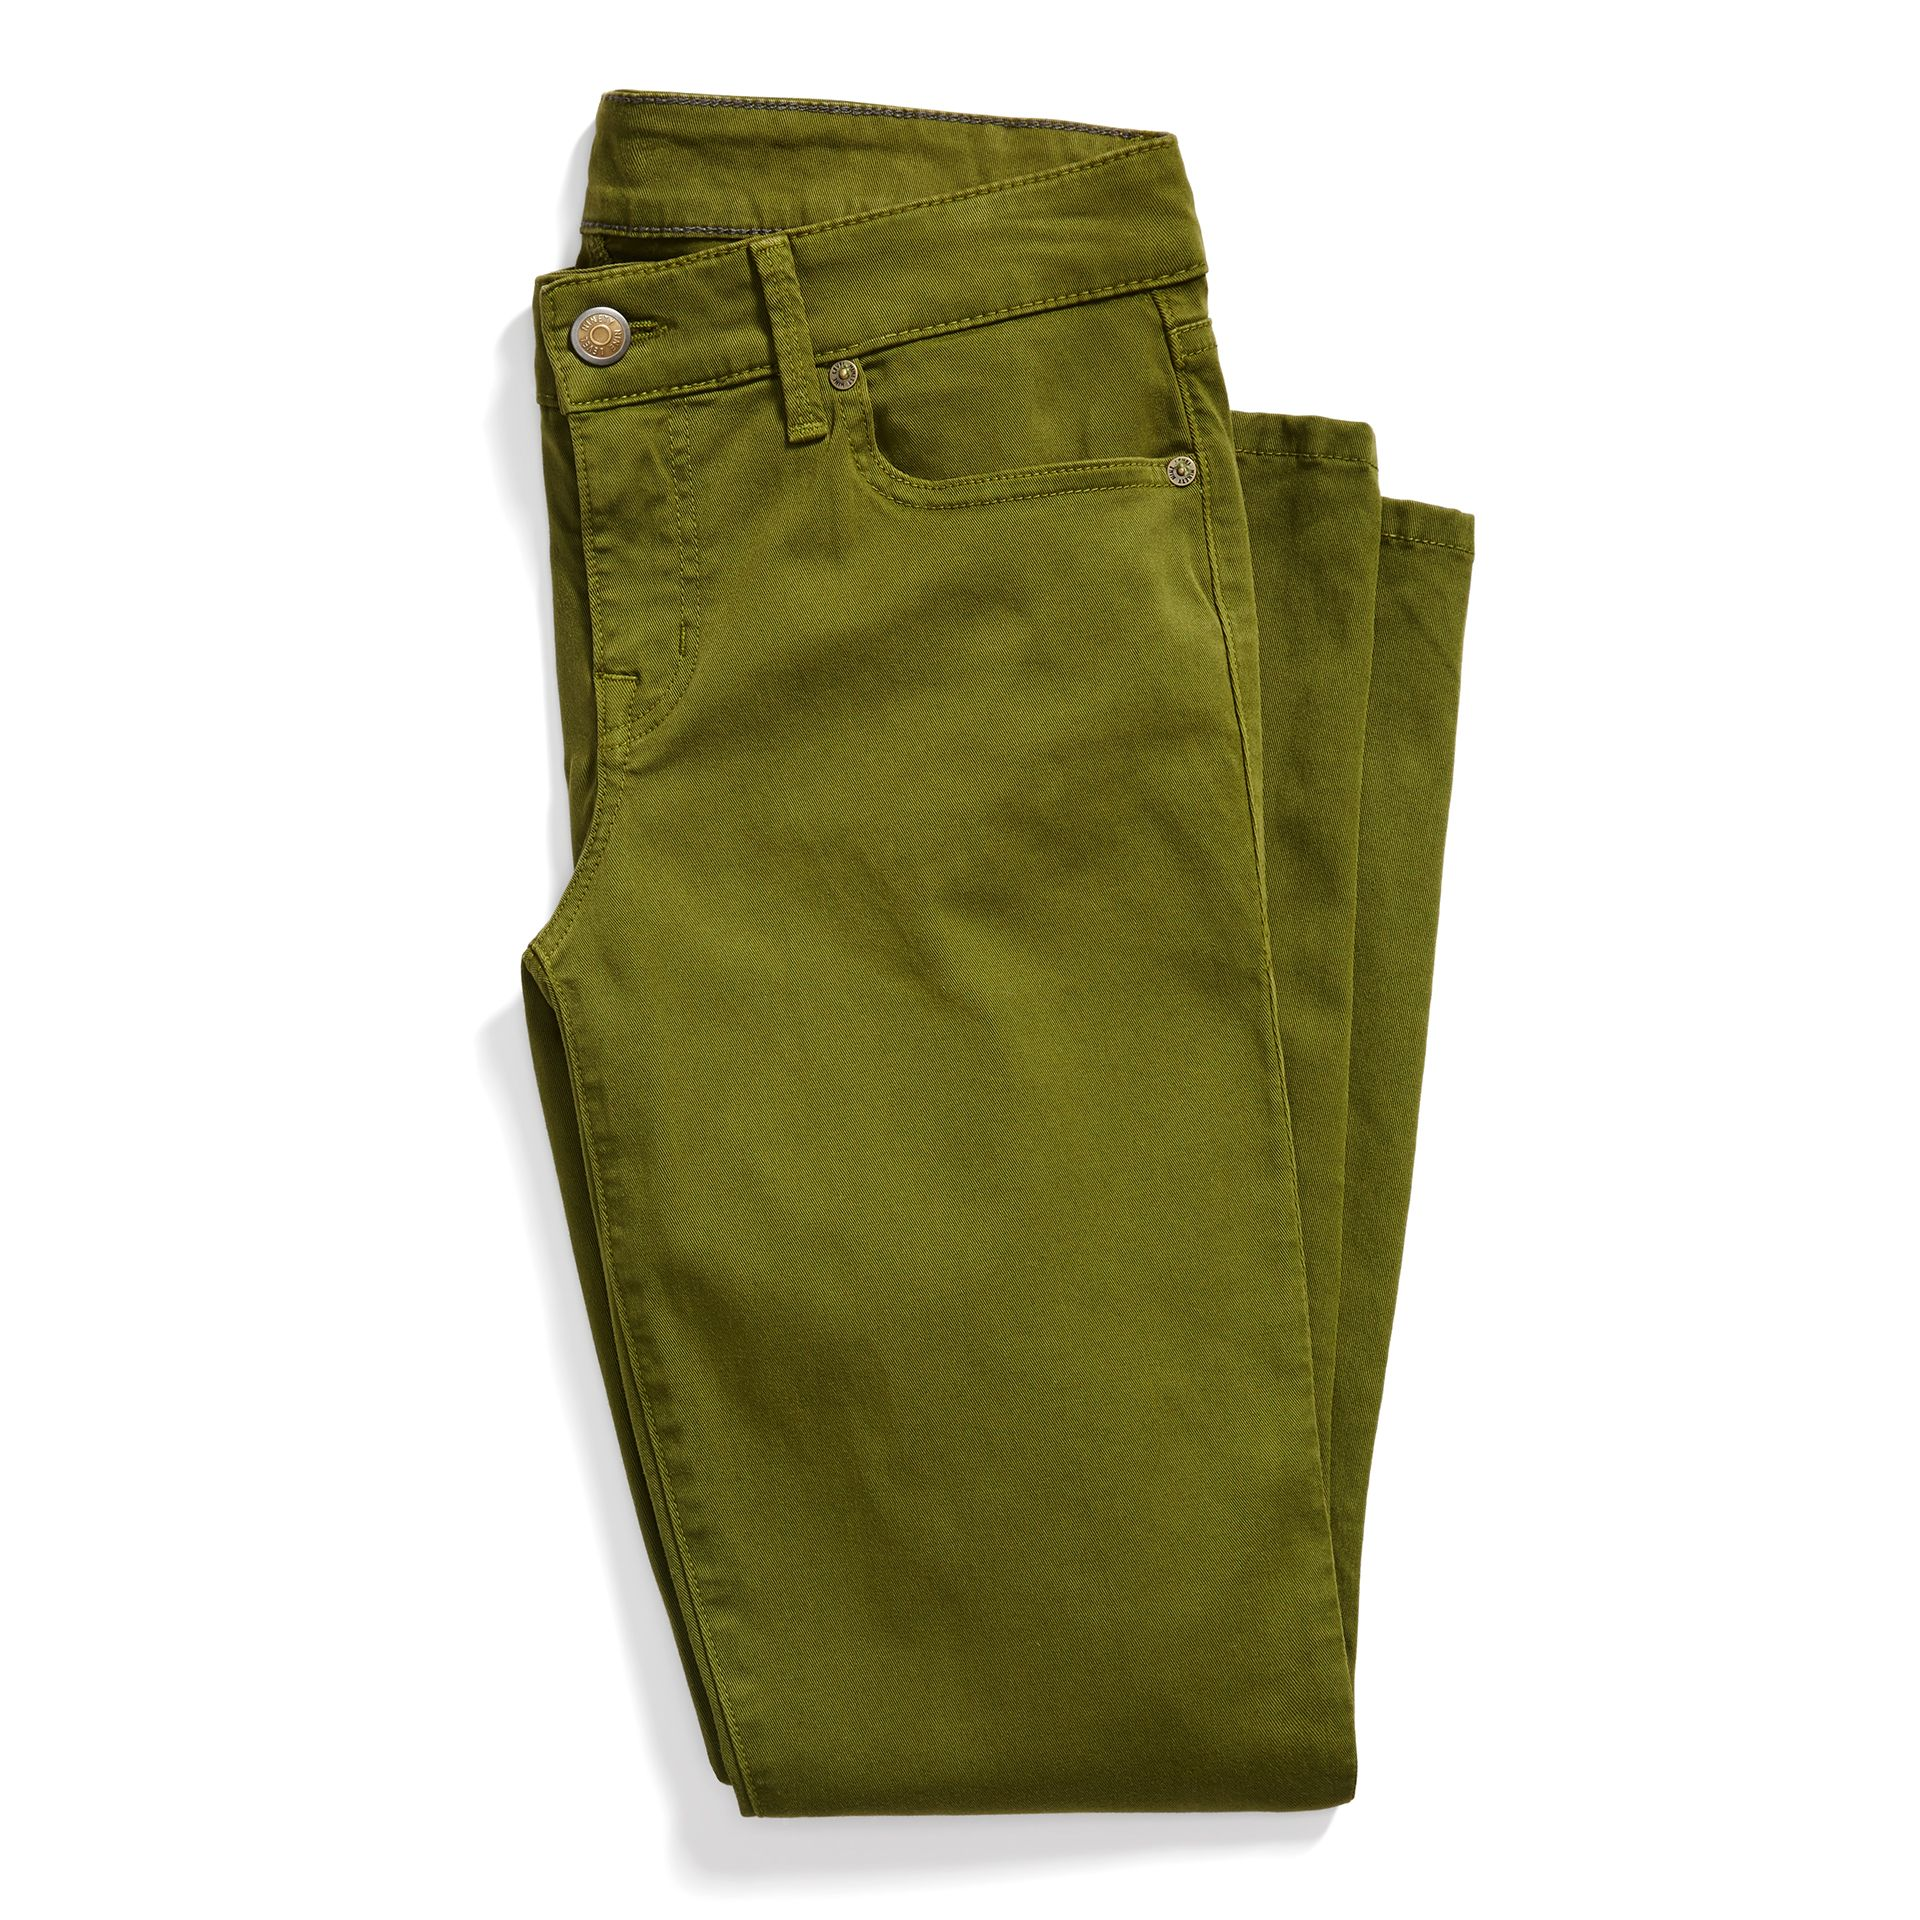 i would love some olive bottoms capris jeans or even a skirt as an